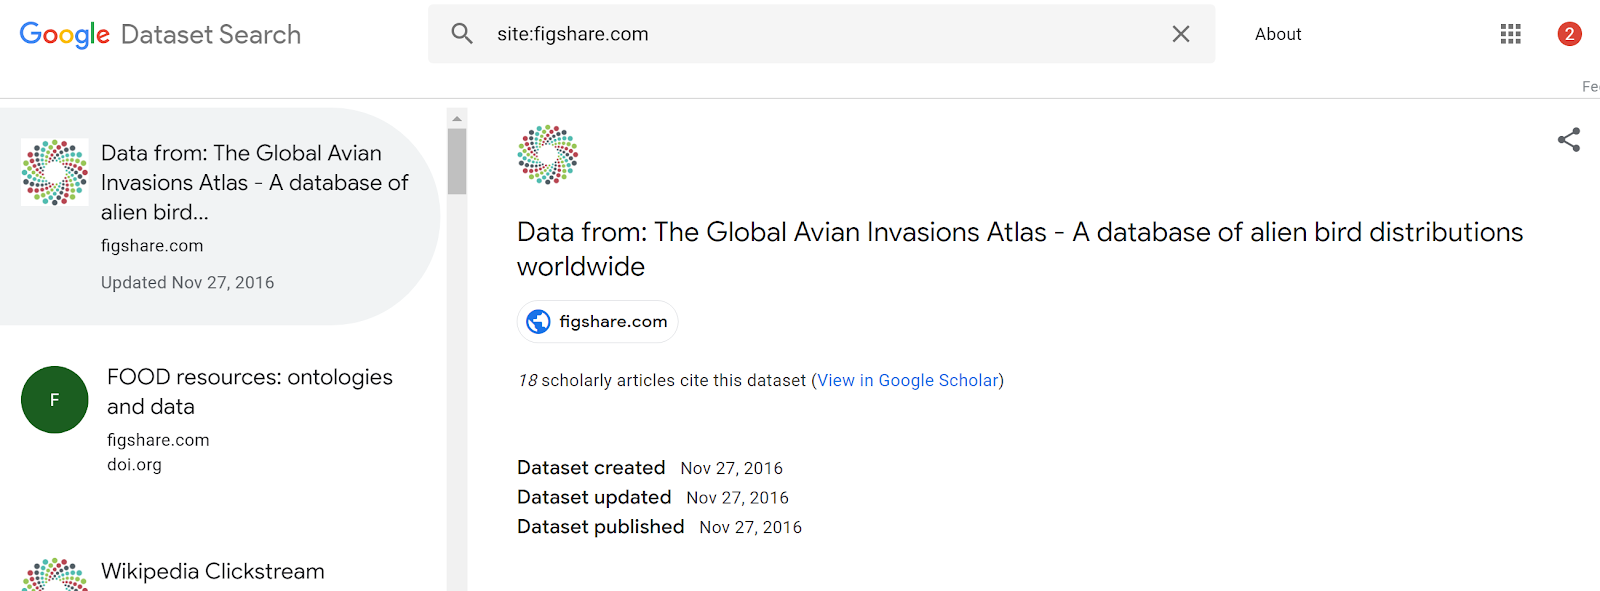 Google dataset search - a reflection on the implications | Musings